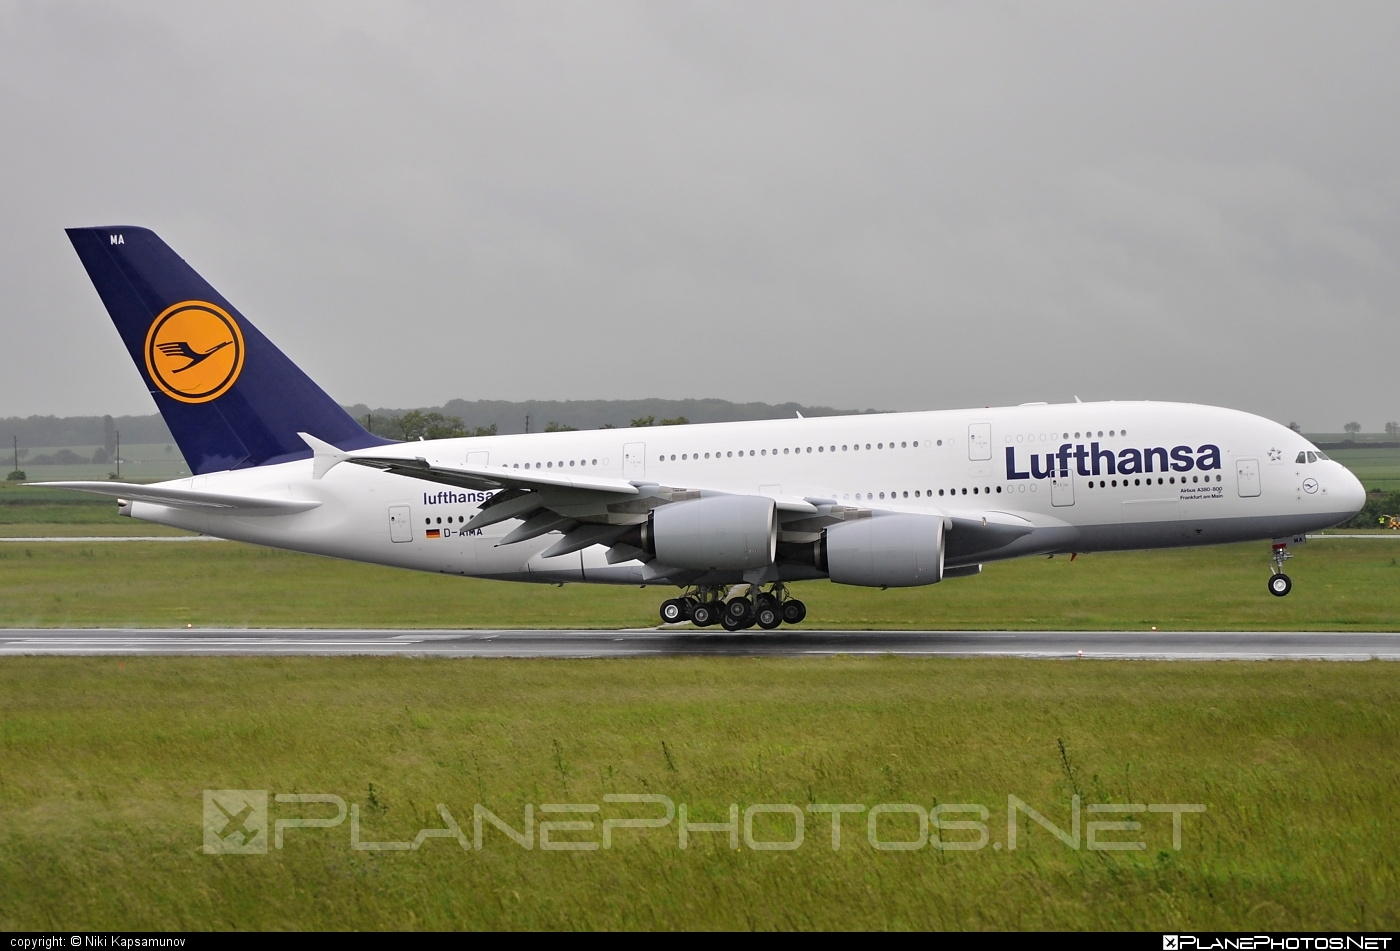 Airbus A380-841 - D-AIMA operated by Lufthansa #a380 #a380family #airbus #airbus380 #lufthansa